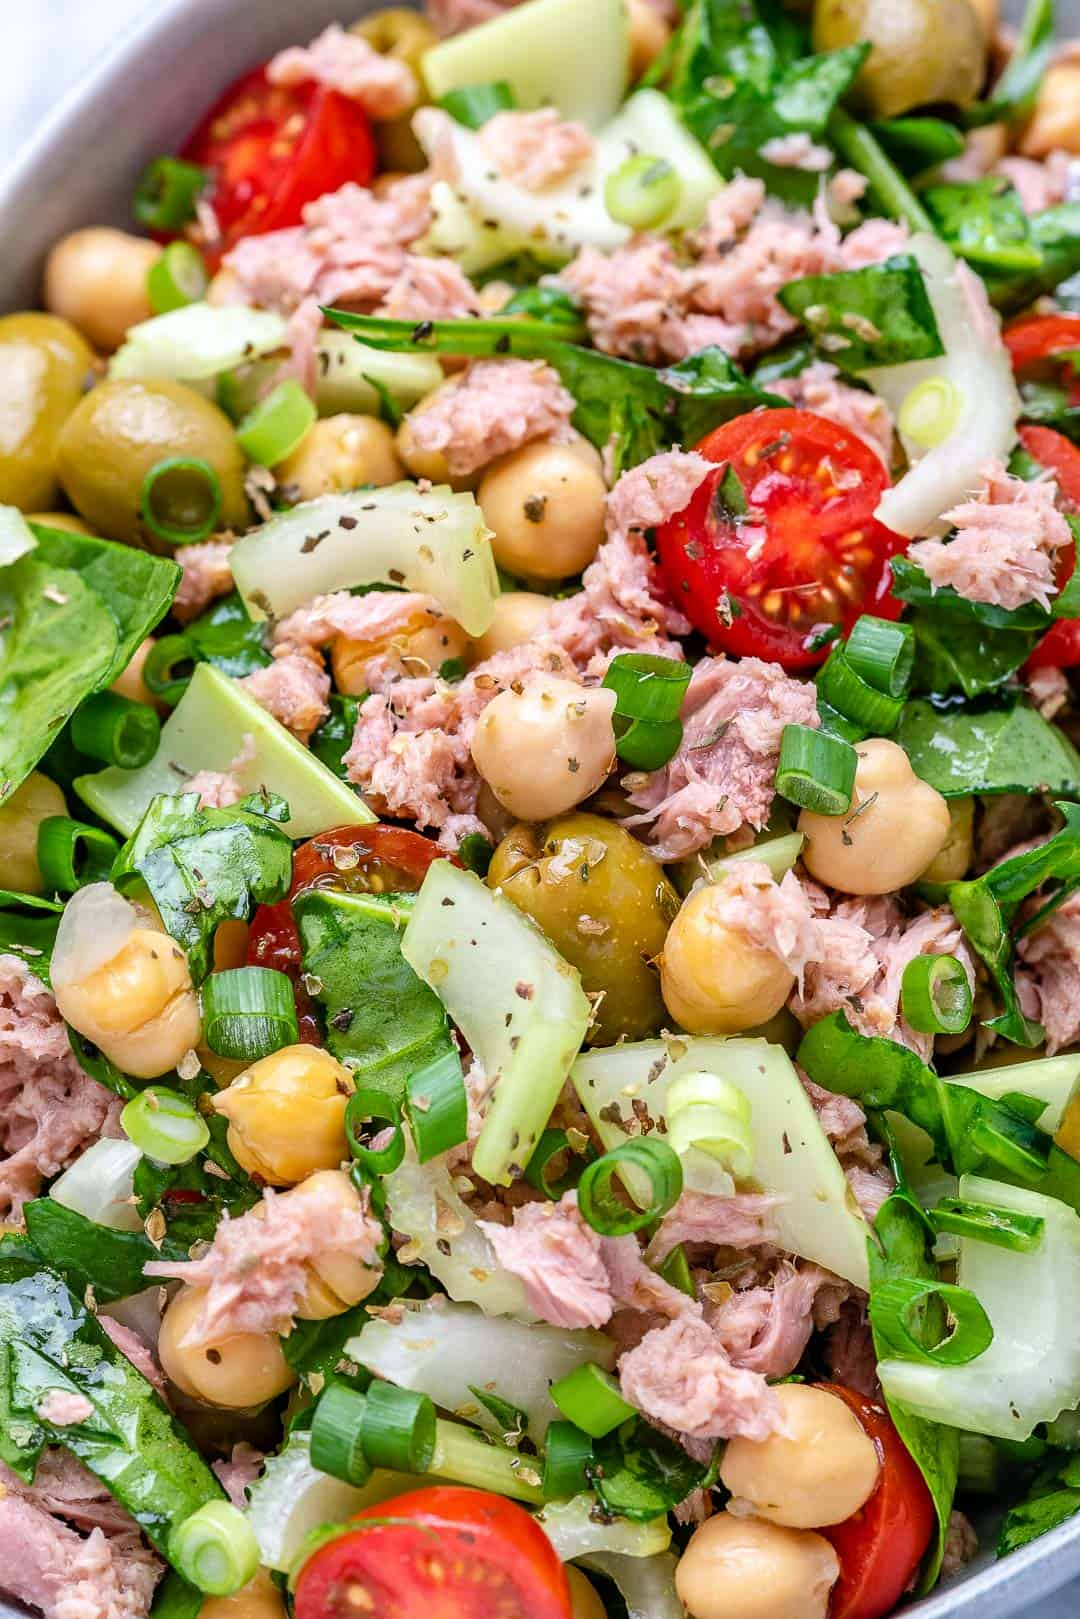 easy tuna salad recipe with celery, olives, tomatoes